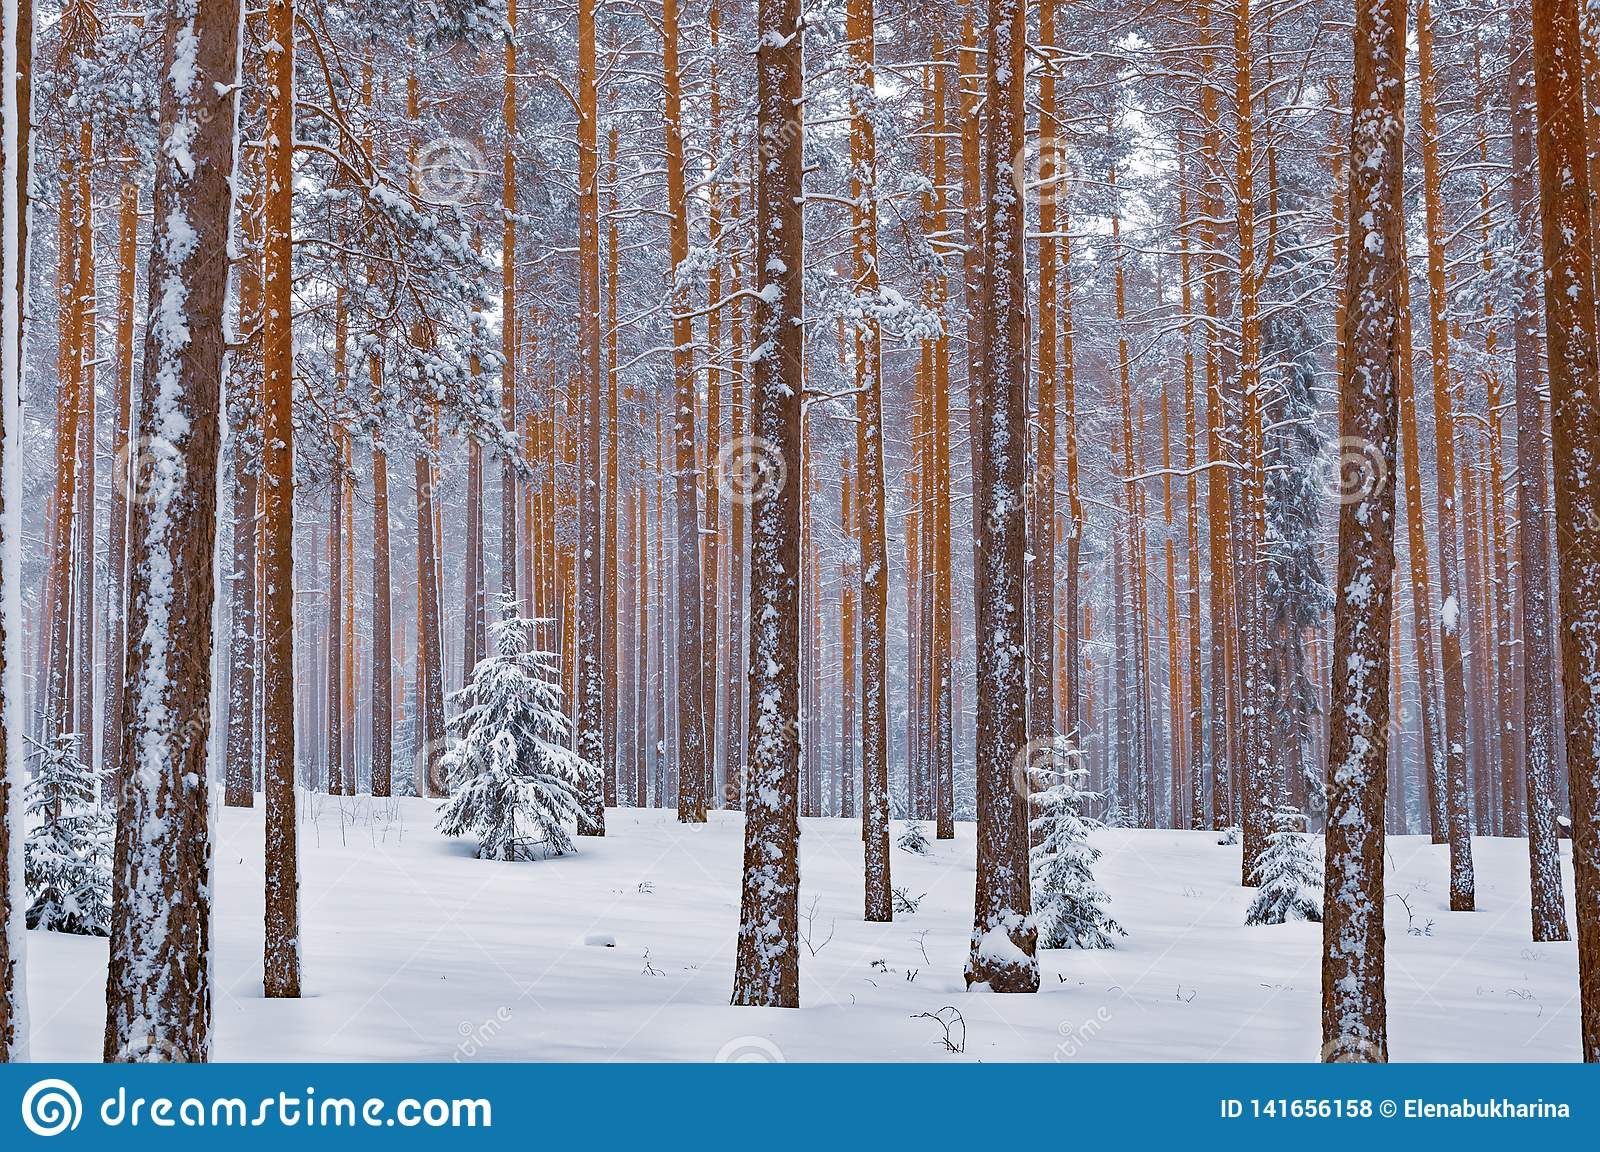 Winter Forest Landscape Snow Covered Fir Tree Surrounded By Pines Stock Photo Image Of Beauty Pine 141656158